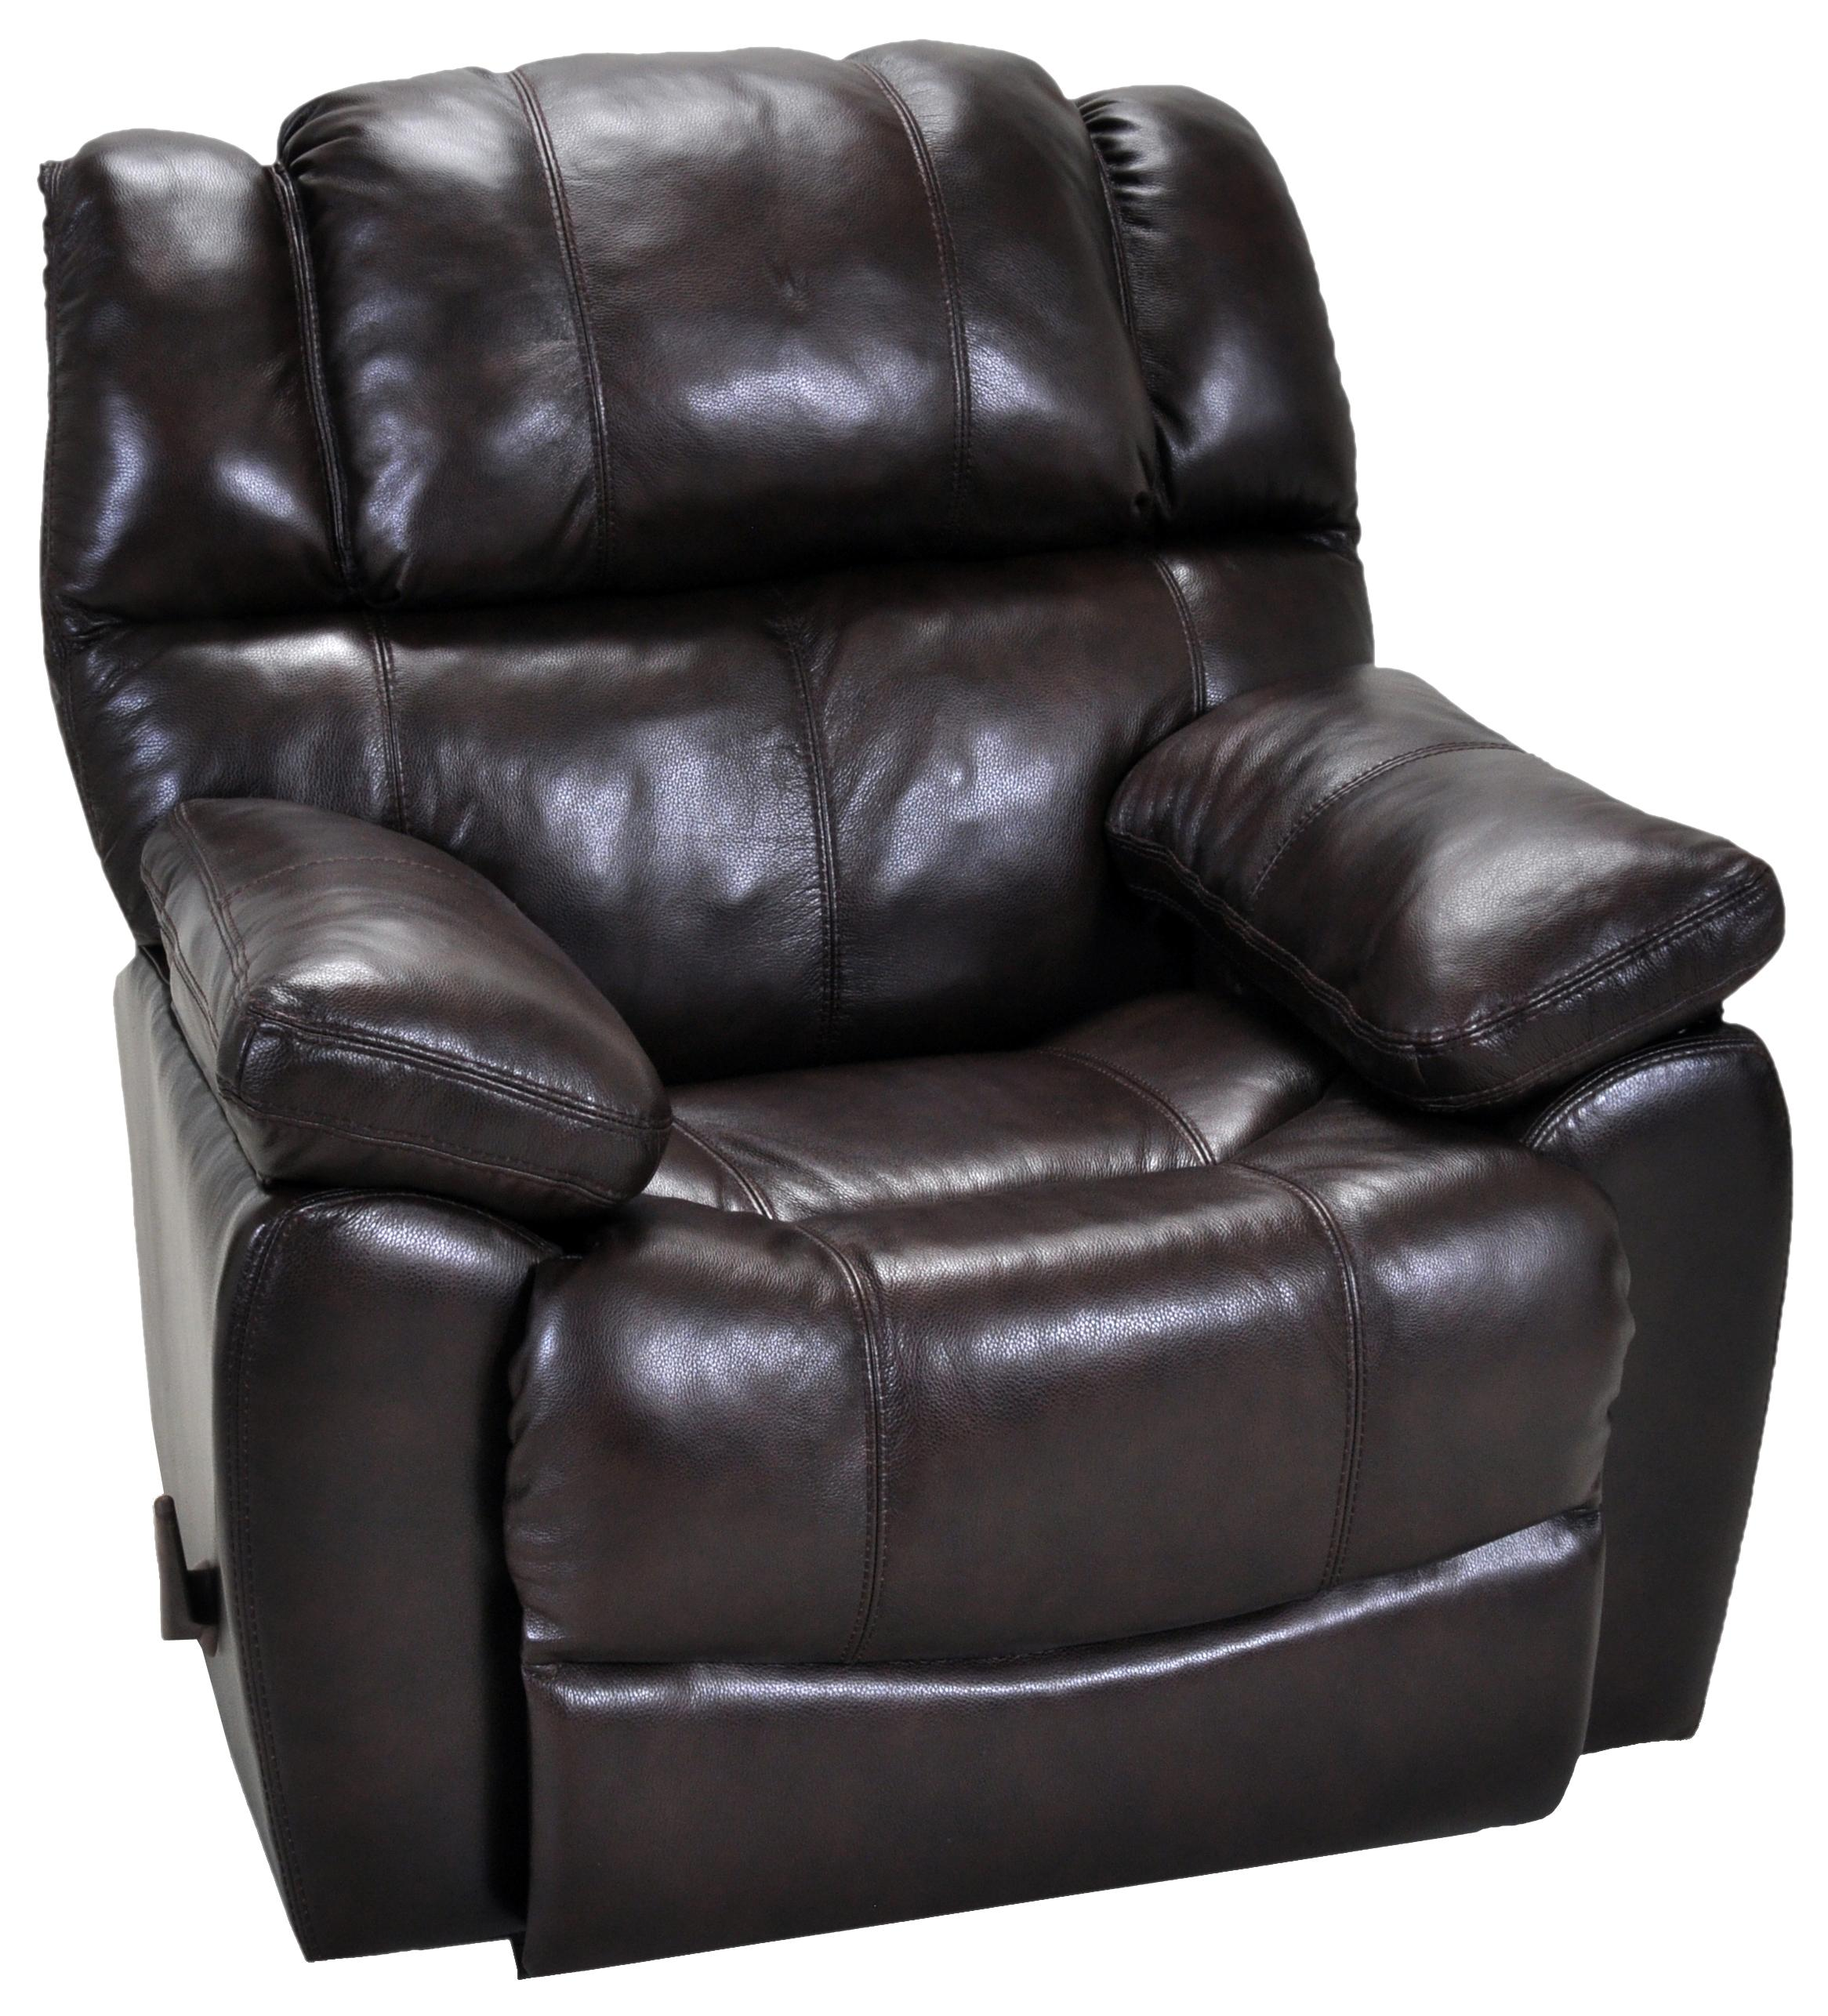 Franklin rocker recliners comfortable rocker recliner with sport style seam stitching olinde 39 s - Stylish rocker recliner ...